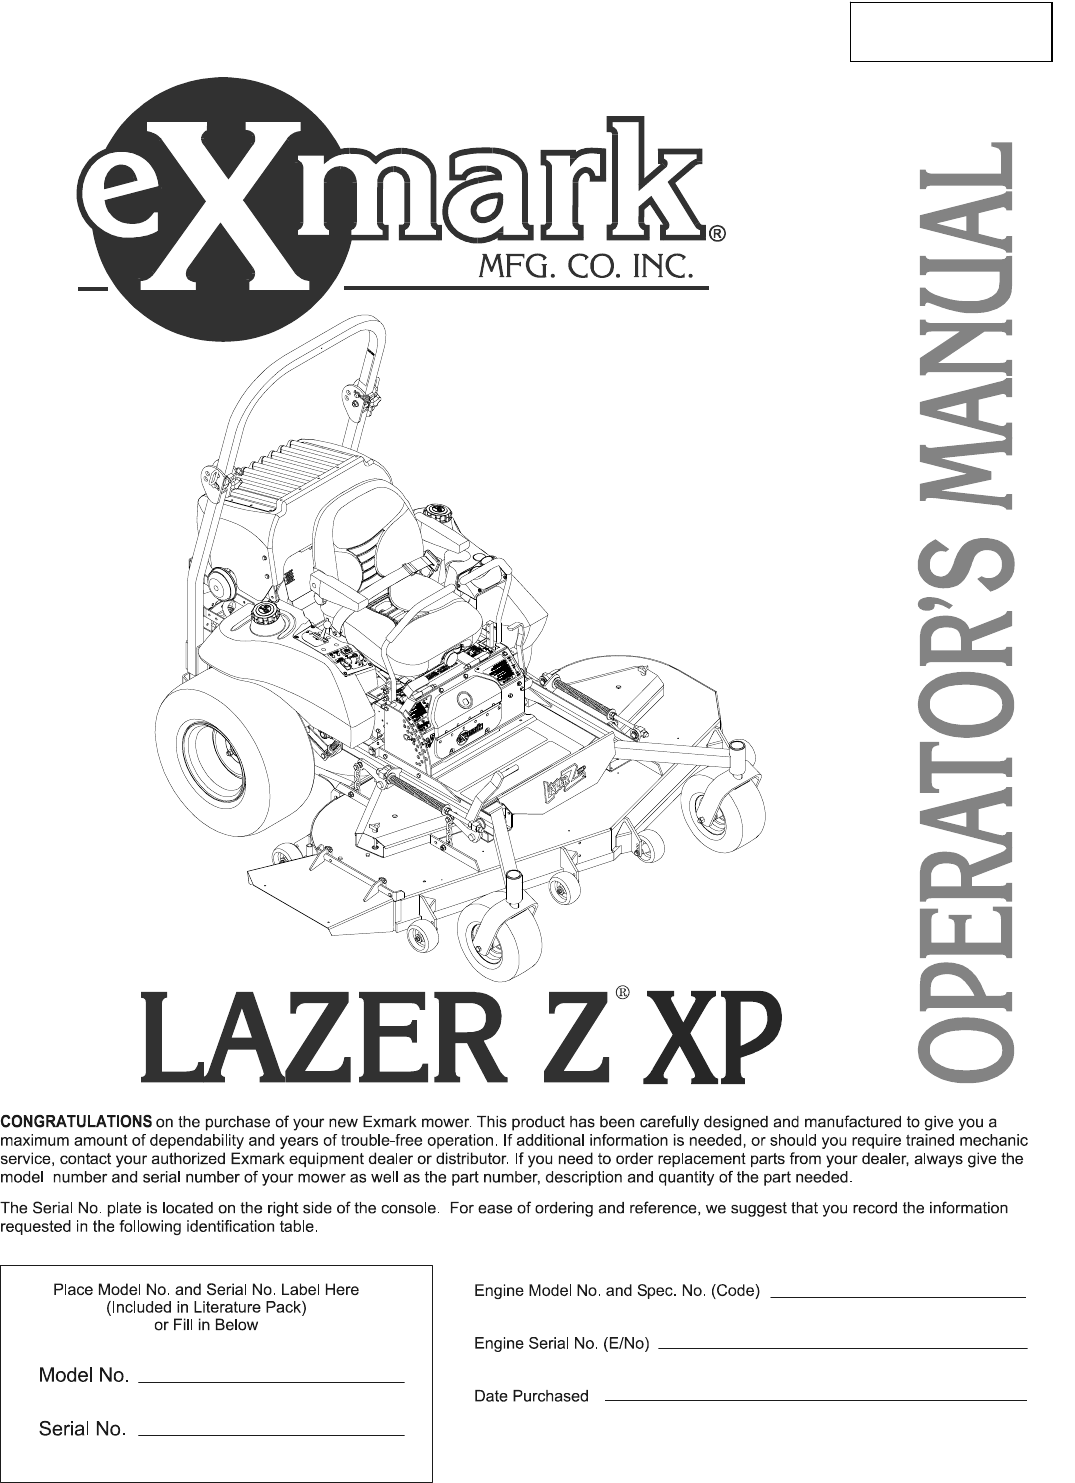 Exmark Lazer Z Xp Users Manual 103 7372